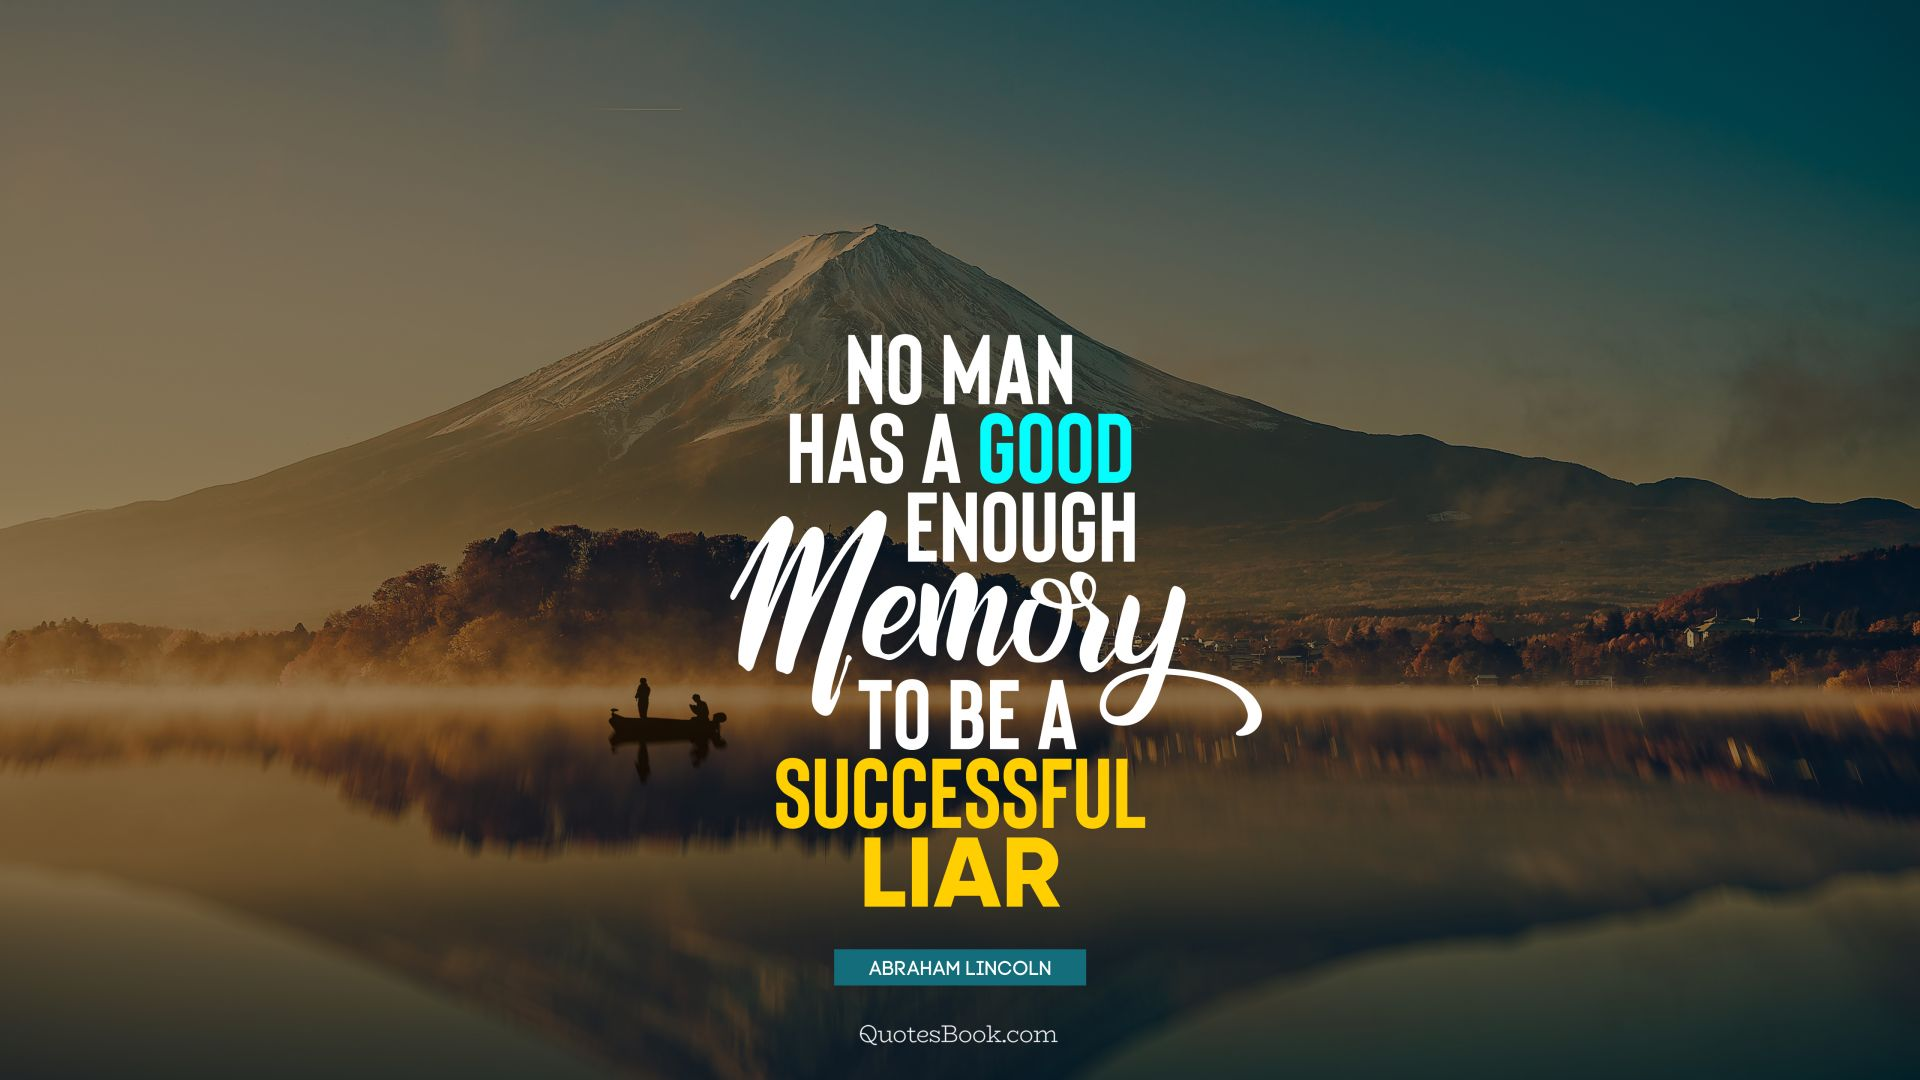 No man has a good enough memory to be a successful liar. - Quote by Abraham Lincoln